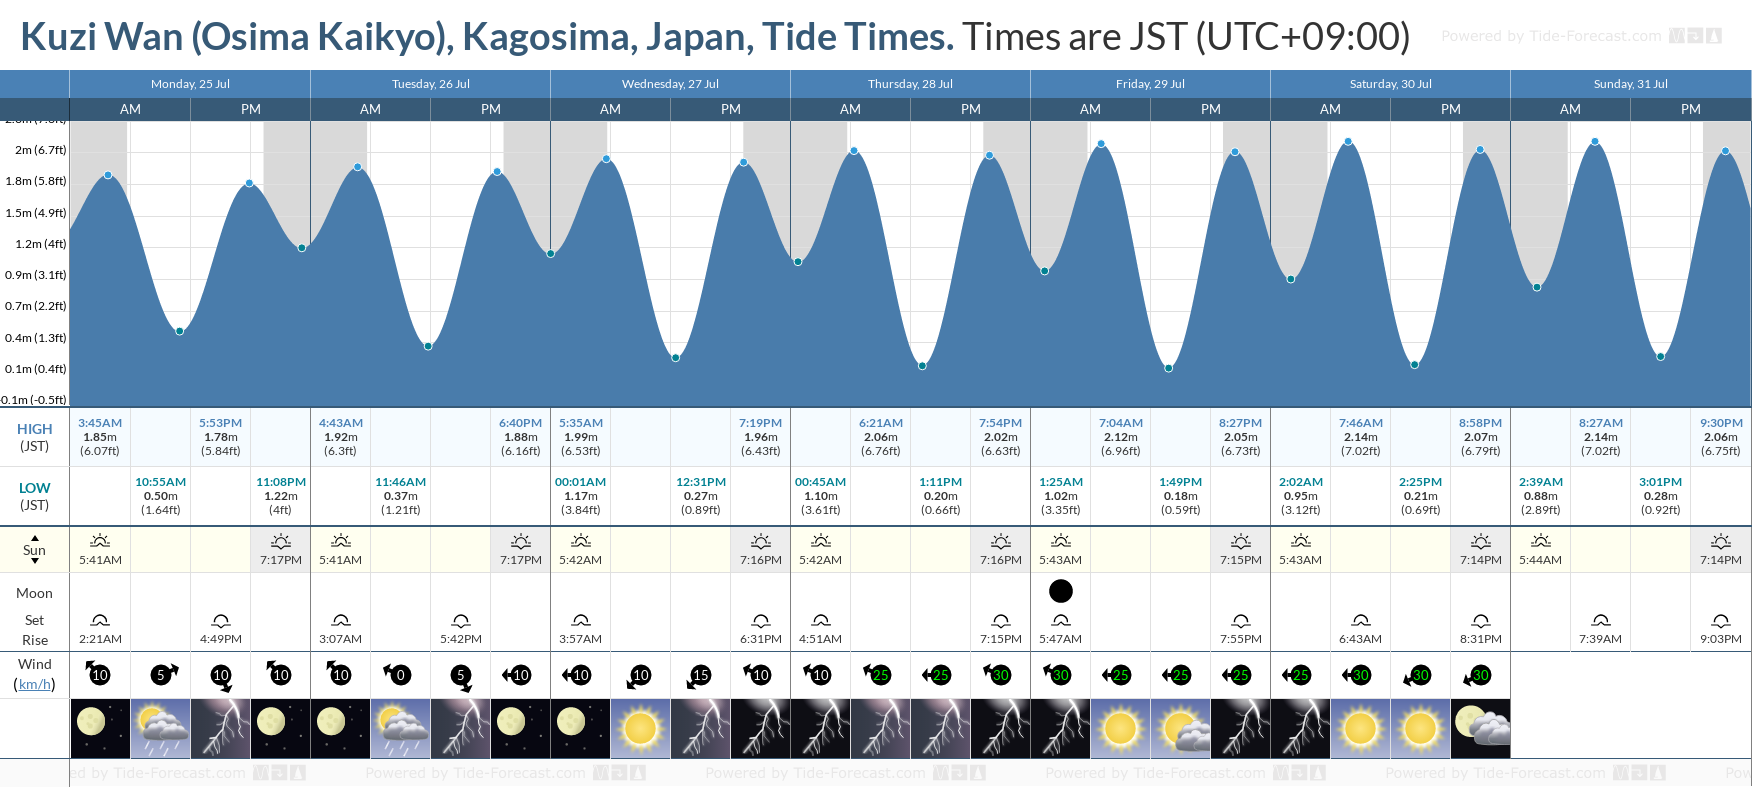 Kuzi Wan (Osima Kaikyo), Kagosima, Japan Tide Chart including high and low tide tide times for the next 7 days